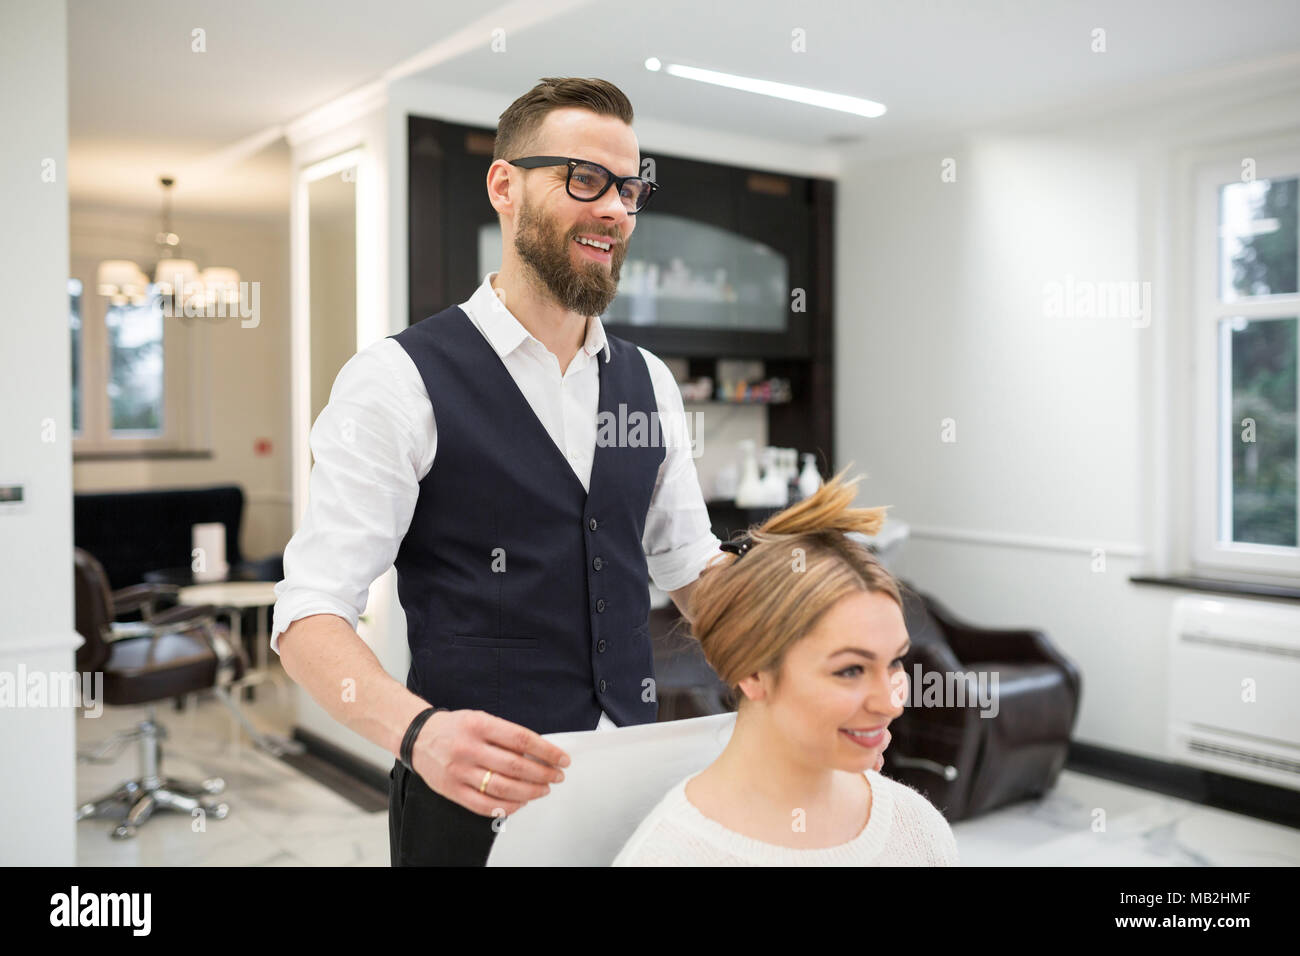 Portrait of happy hairdresser putting towel on client arms - Stock Image